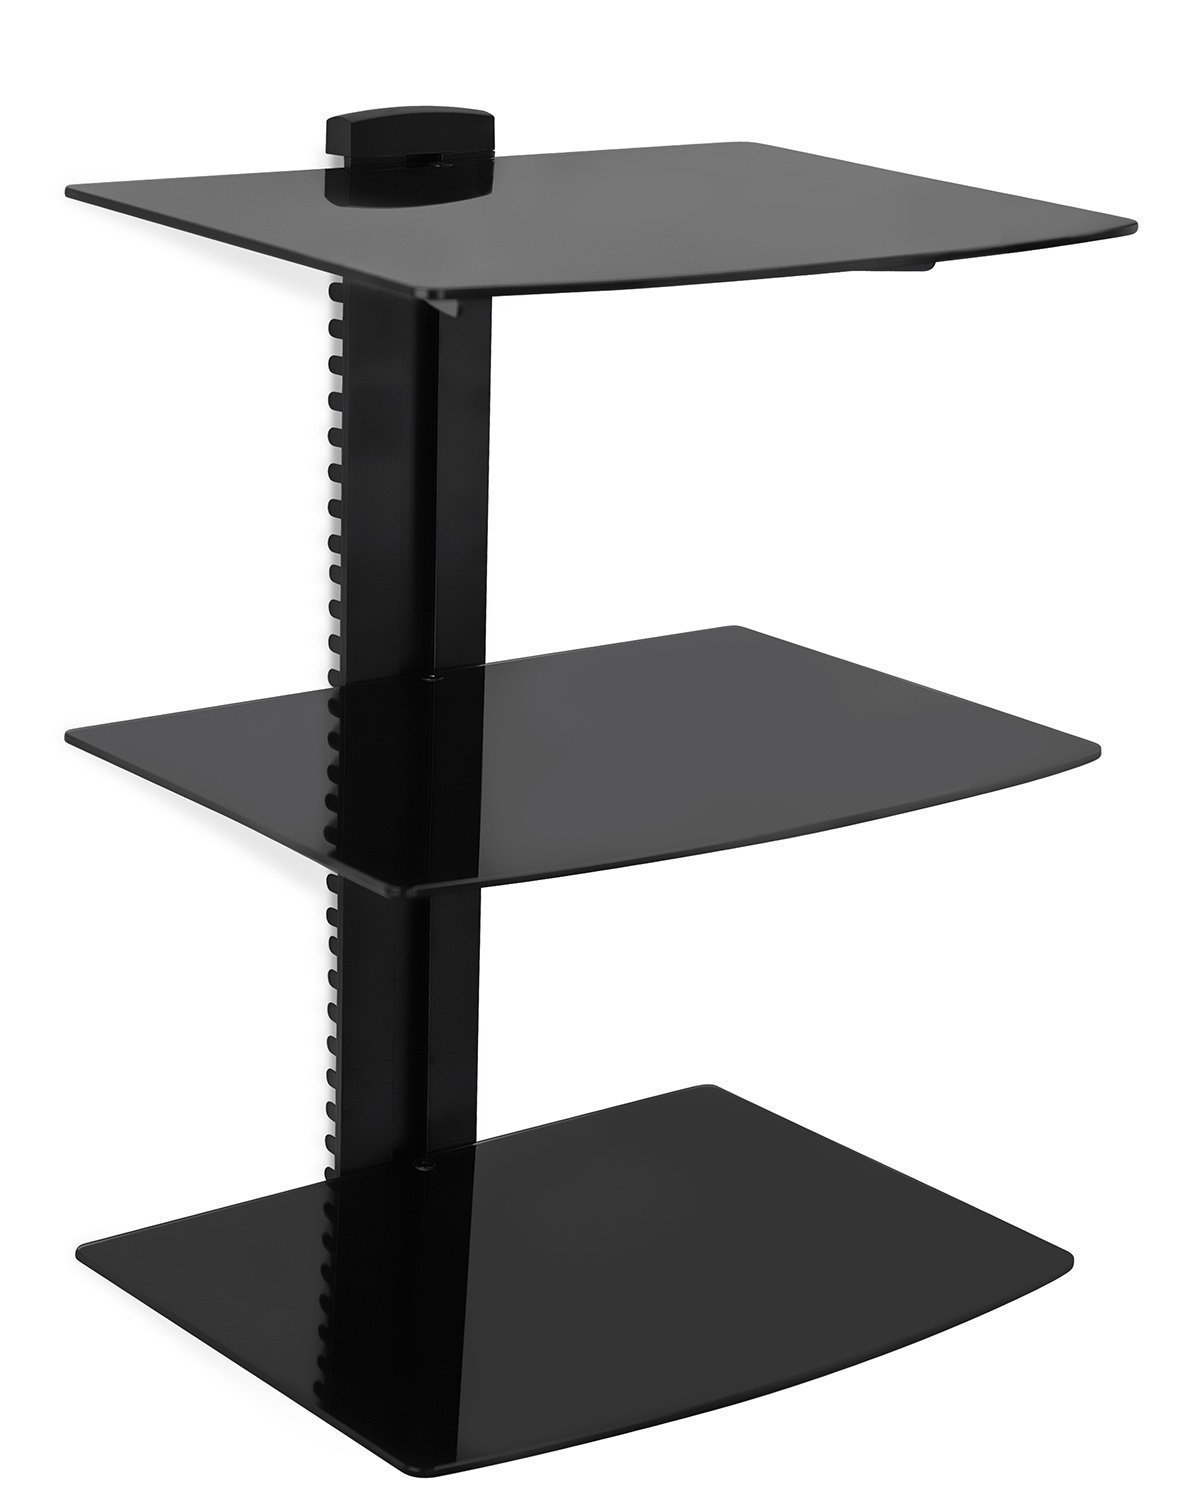 mount floating wall mounted triple glass shelf bracket stand system reviews small oak closets iron brackets for shelves tall dvd large standard cabinet door sizes ikea ribba ture